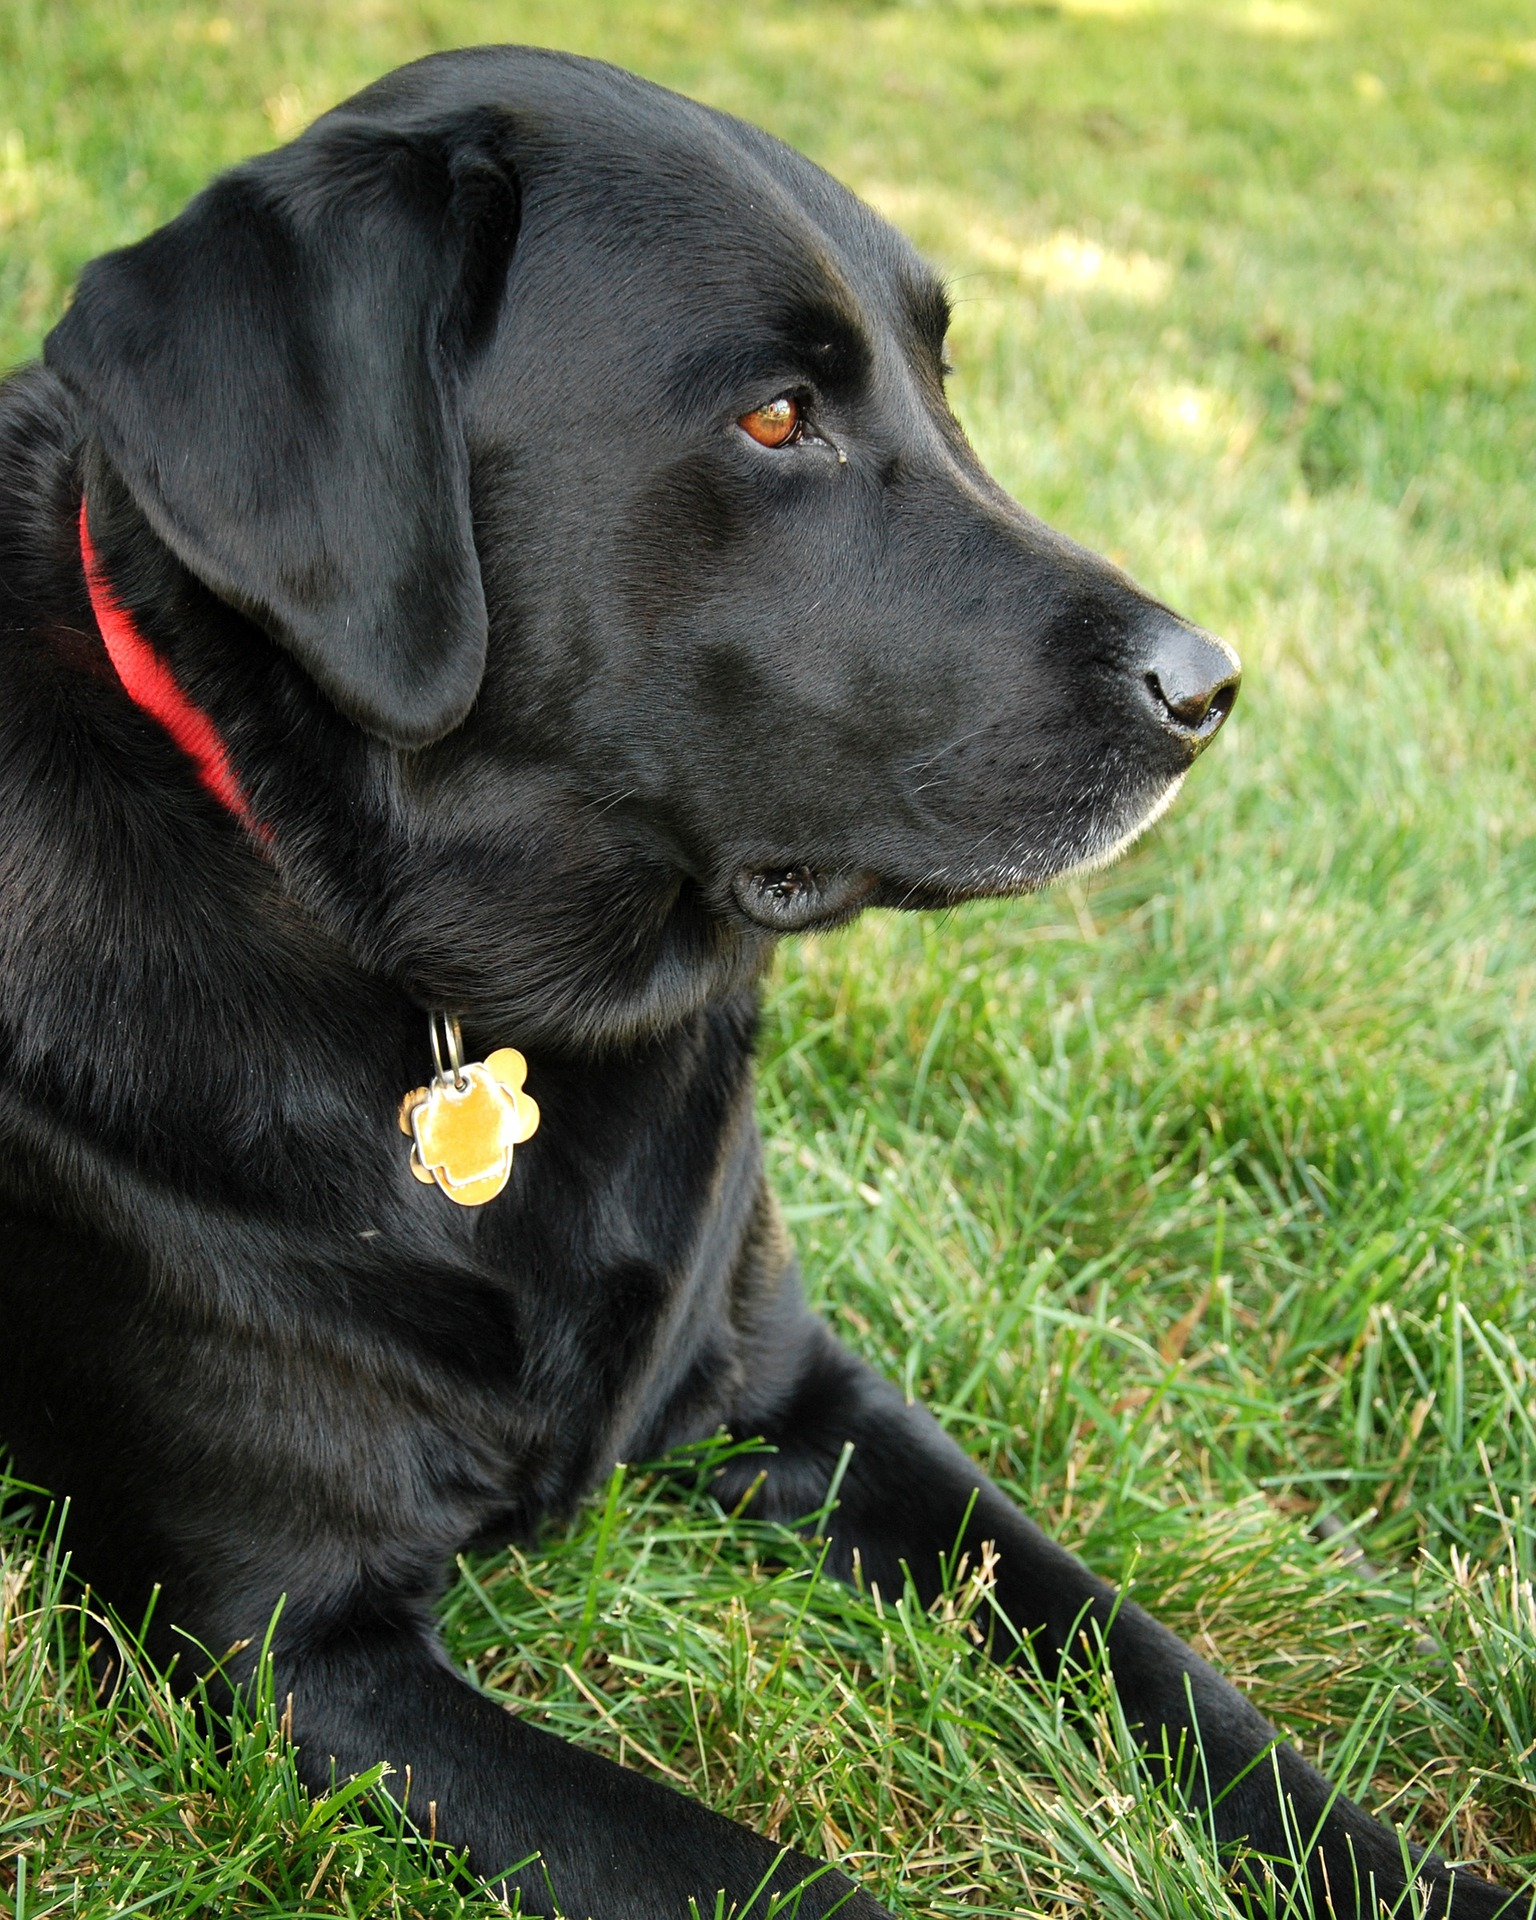 Godogs Project Investigates The Genetics Of Canine Obesity Face Foundation Blog